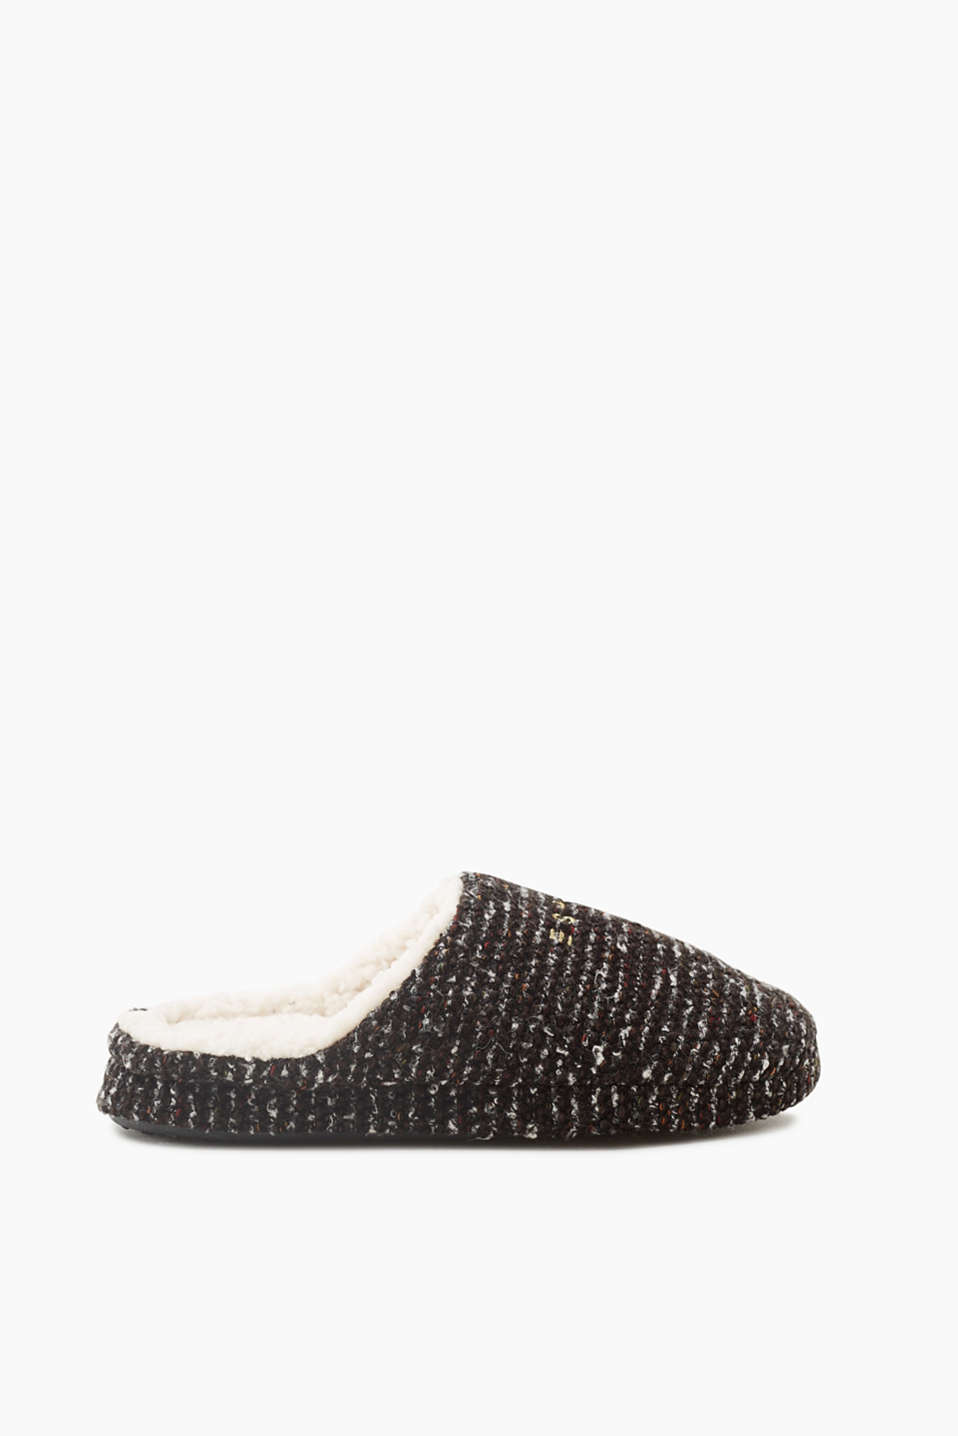 These soft slippers are cosy and soft and are sure to warm your feet up in an instant.